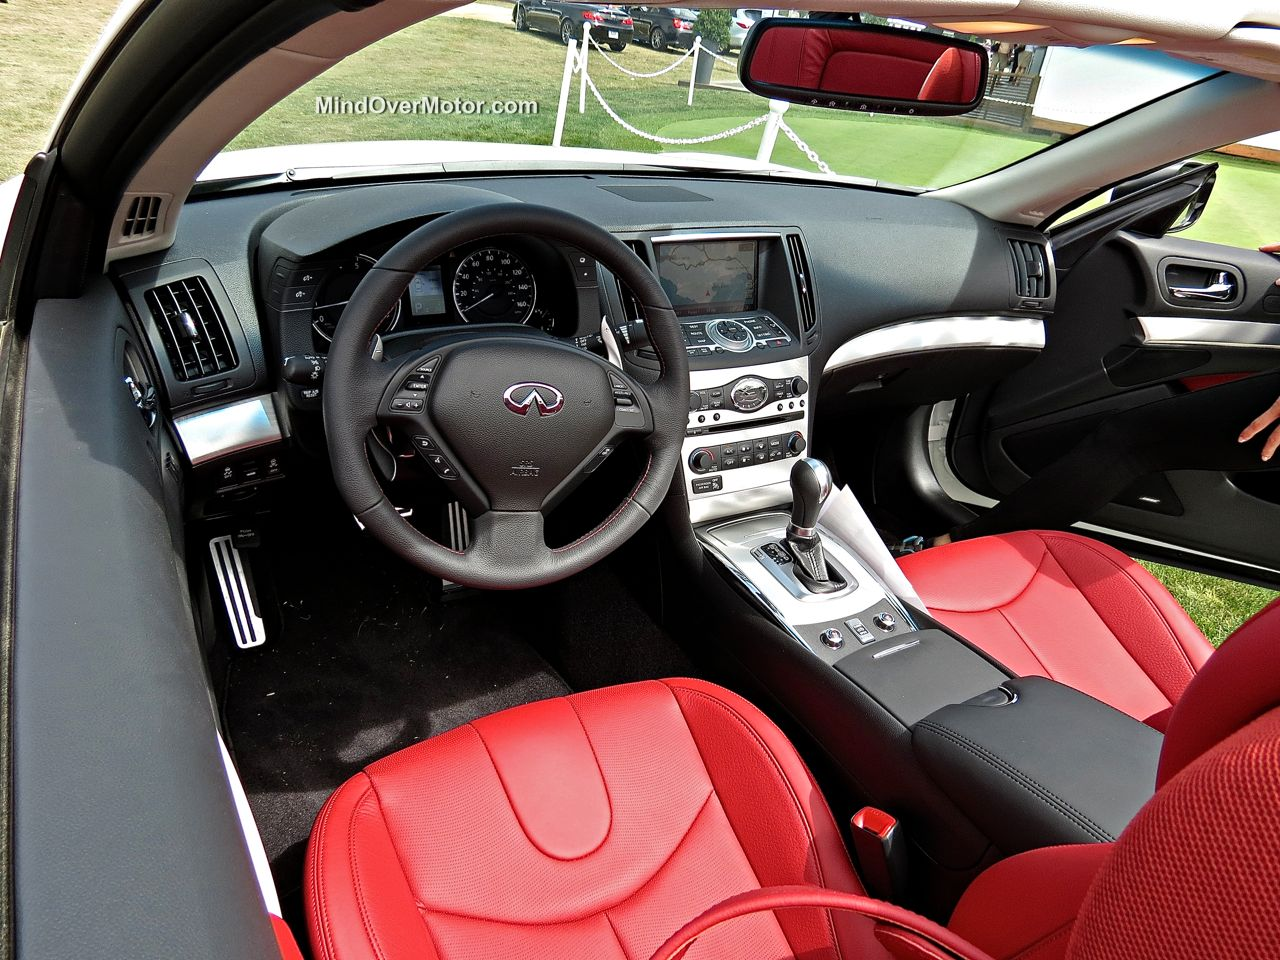 2014 Infiniti Q60 Ipl Convertible Reviewed Grade C Mind Over Motor